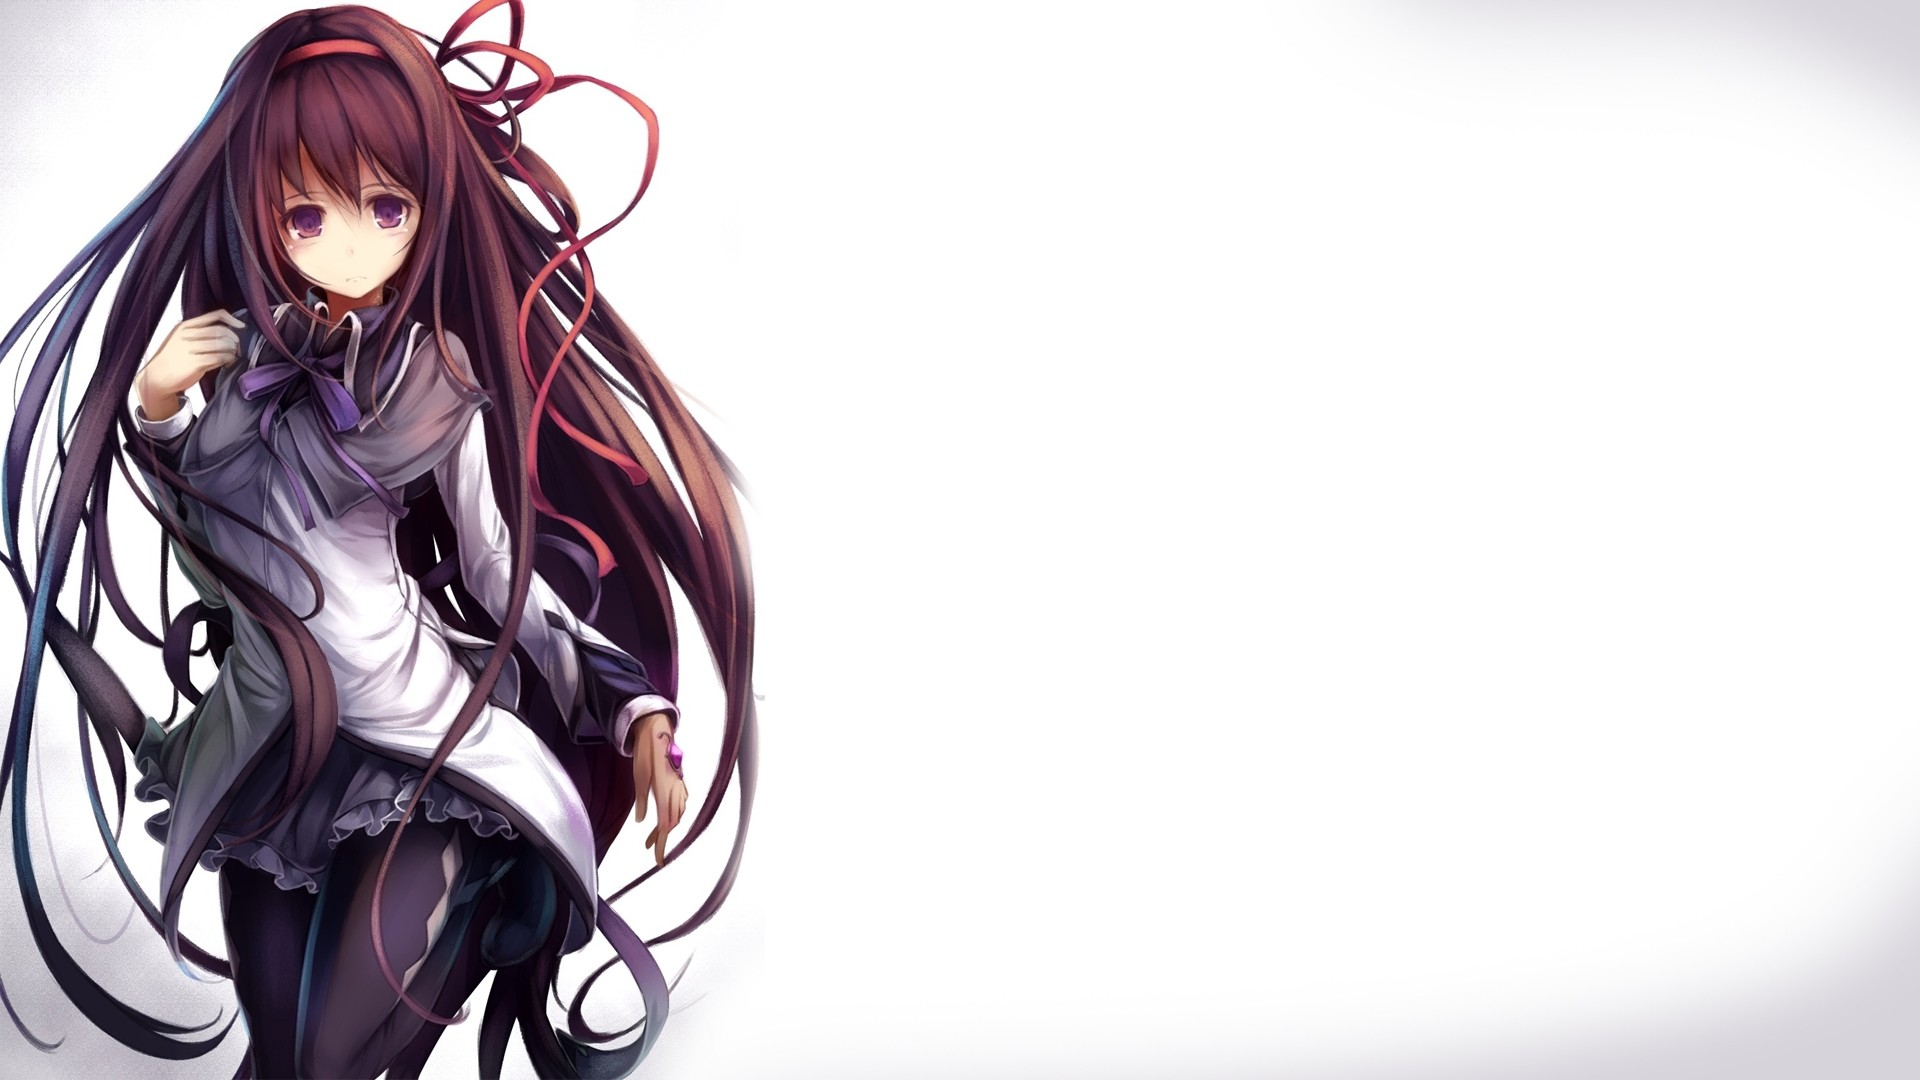 Anime Girl Hd Wallpaper 1080p 83 Images